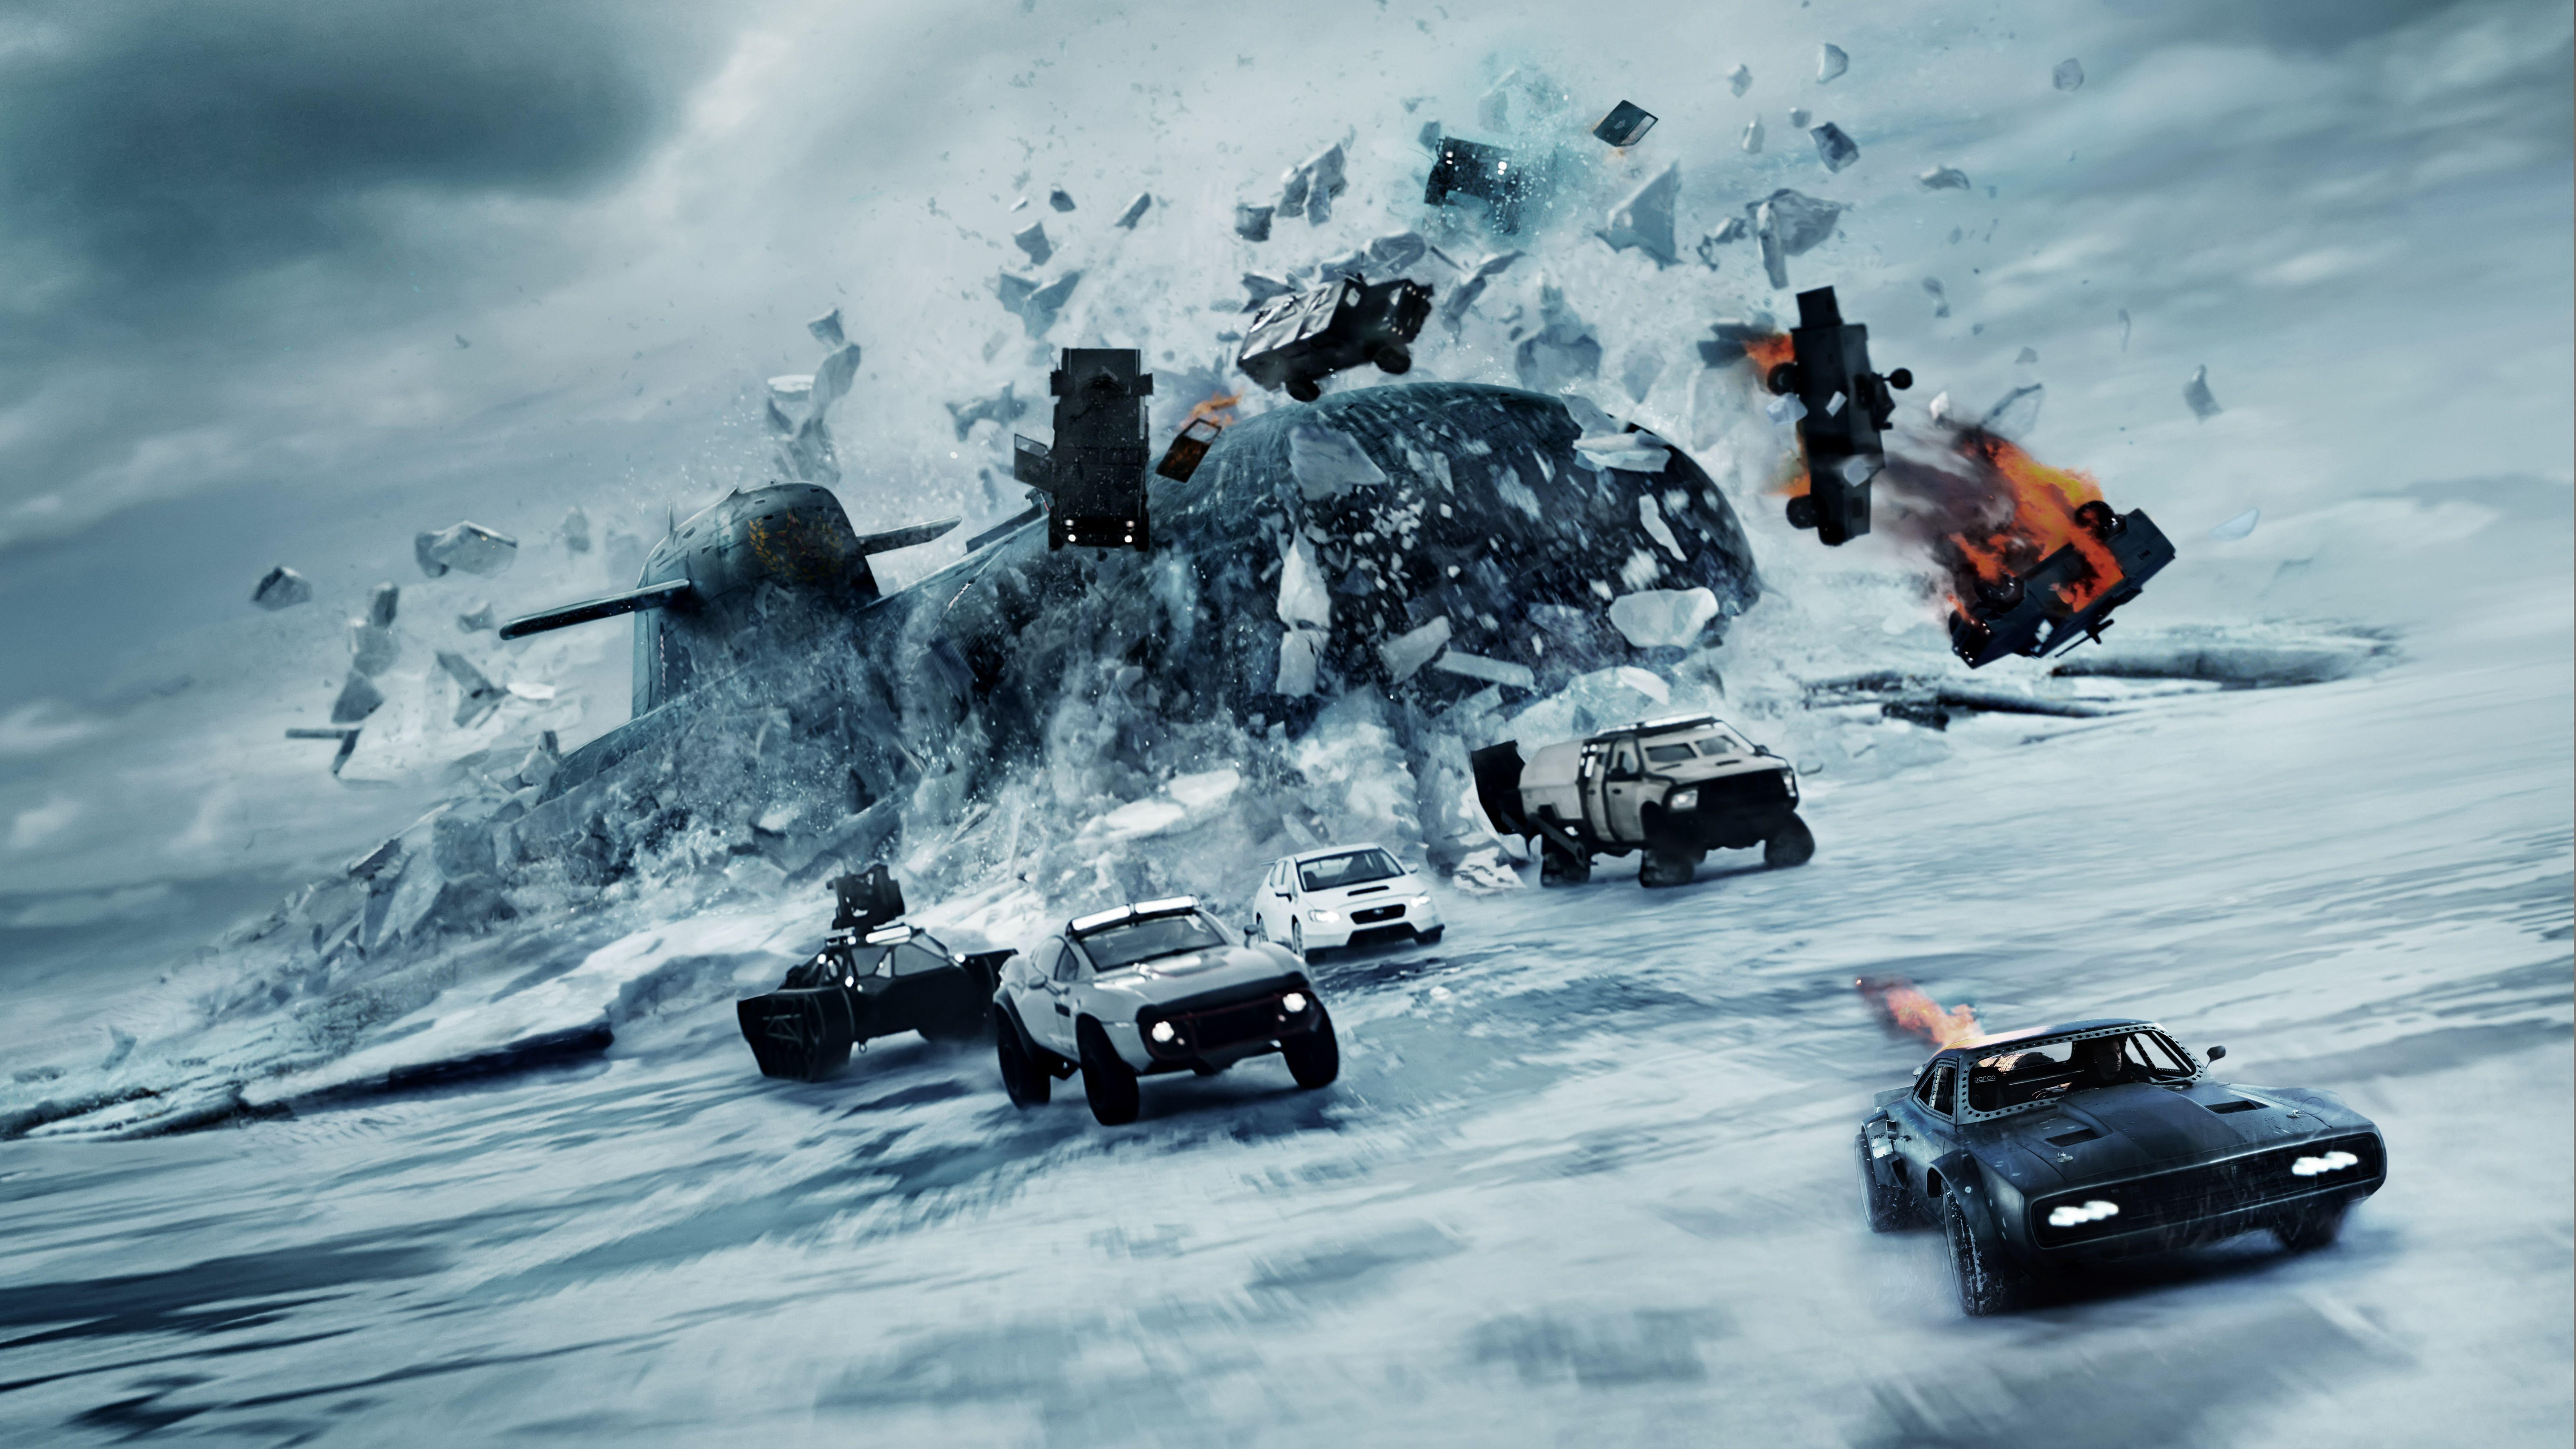 Wallpaper Fast & Furious 8, The Fate of the Furious, 2017, 4K ...